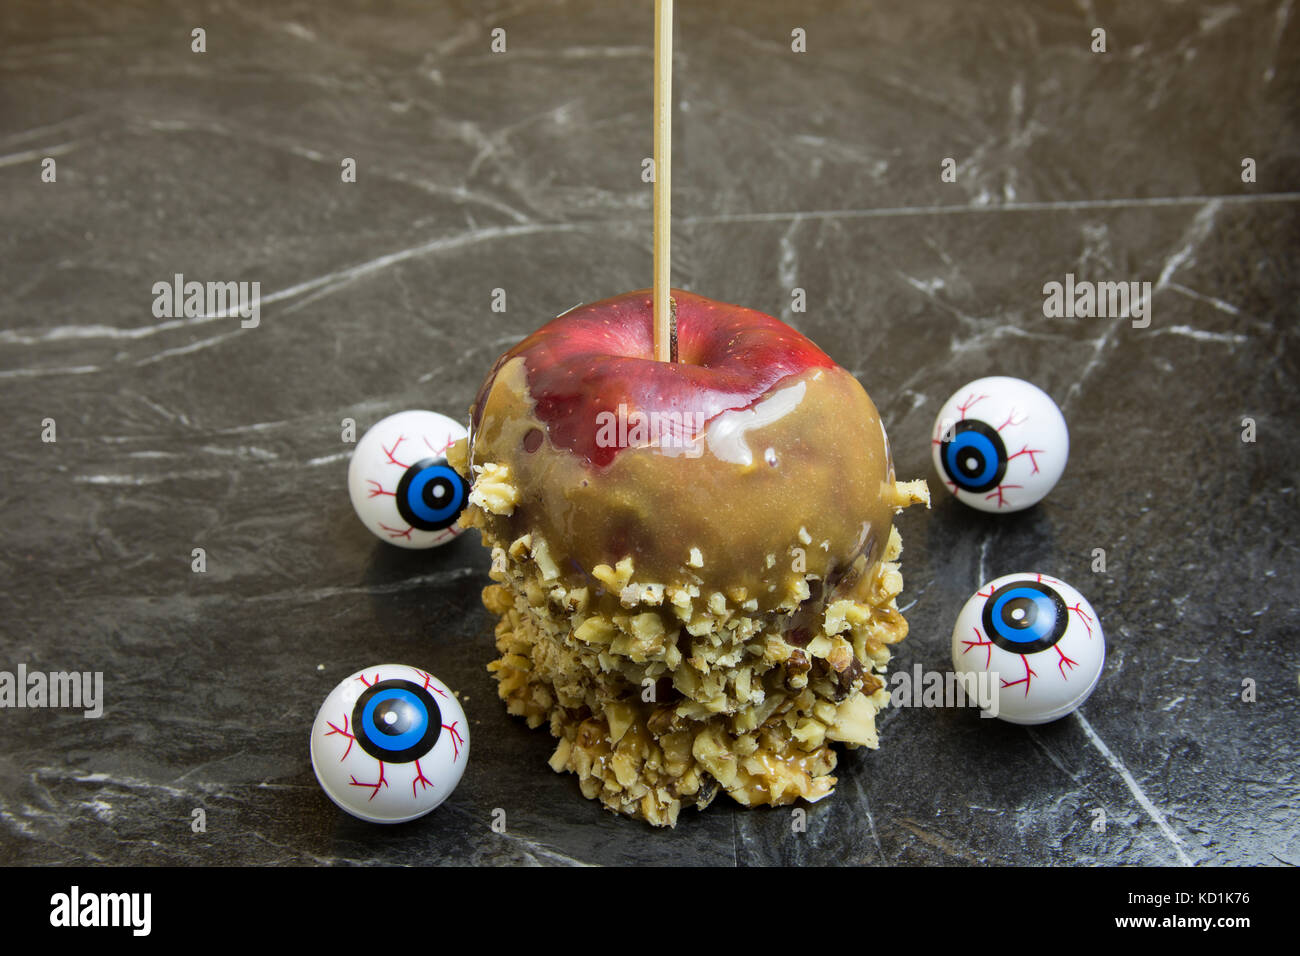 Caramel dipped red apples coated with chopped walnuts surrounded by eyeballs. - Stock Image